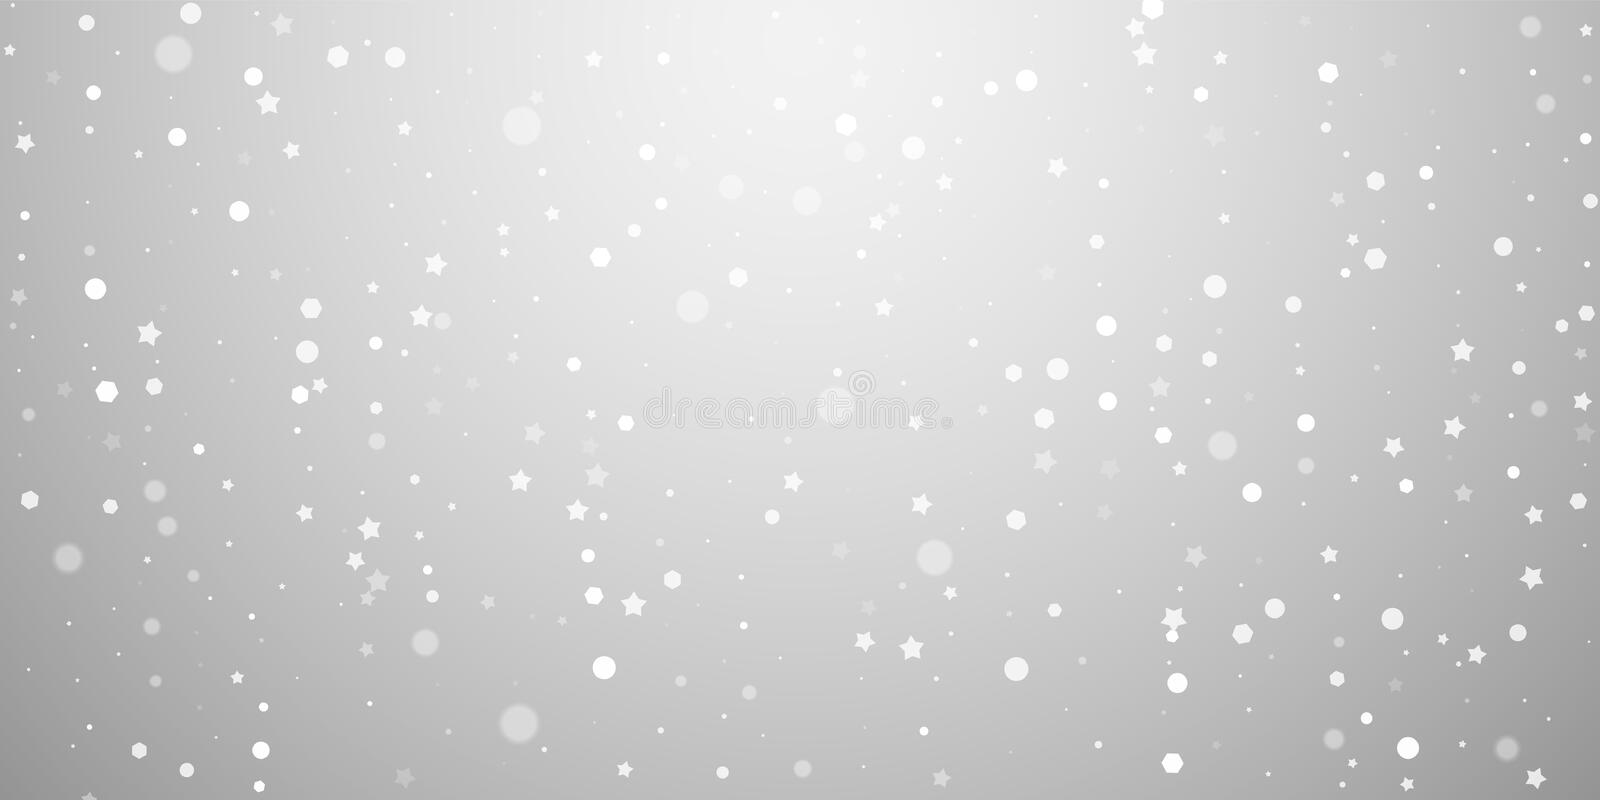 Magic stars random Christmas background. Subtle fl. Ying snow flakes and stars on light grey background. Awesome winter silver snowflake overlay template. Cute royalty free illustration